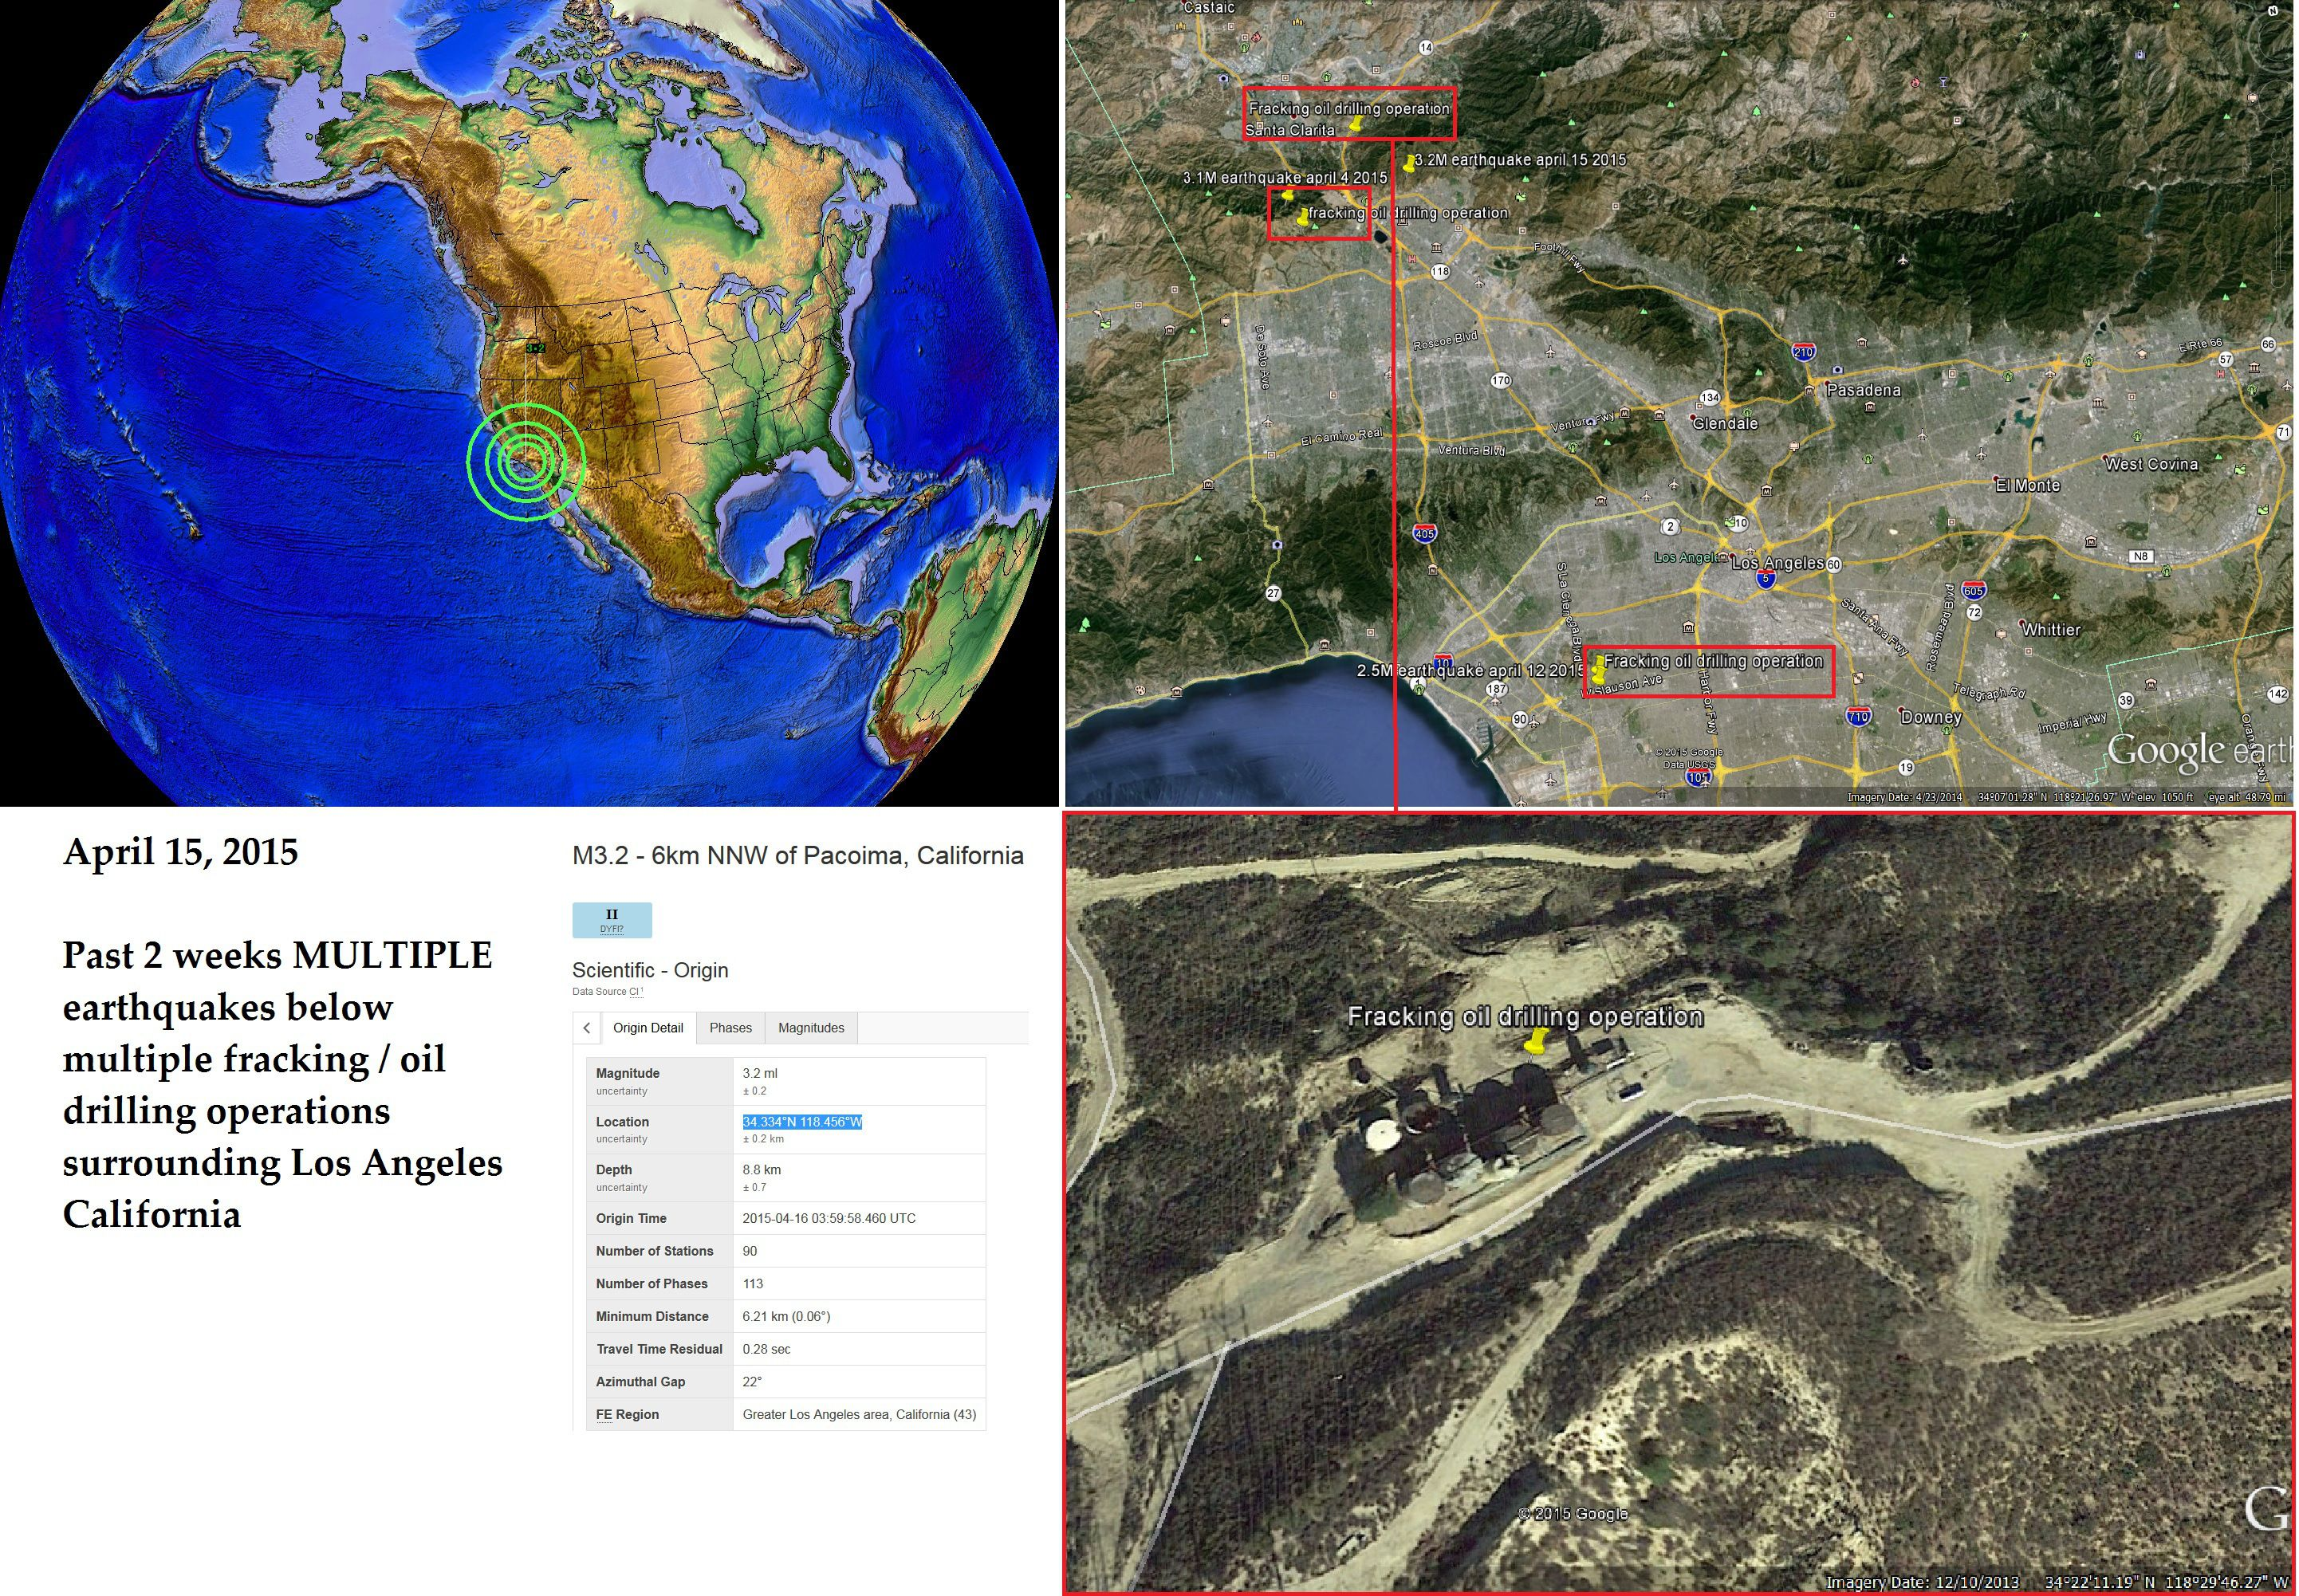 A major earthquake in the area of